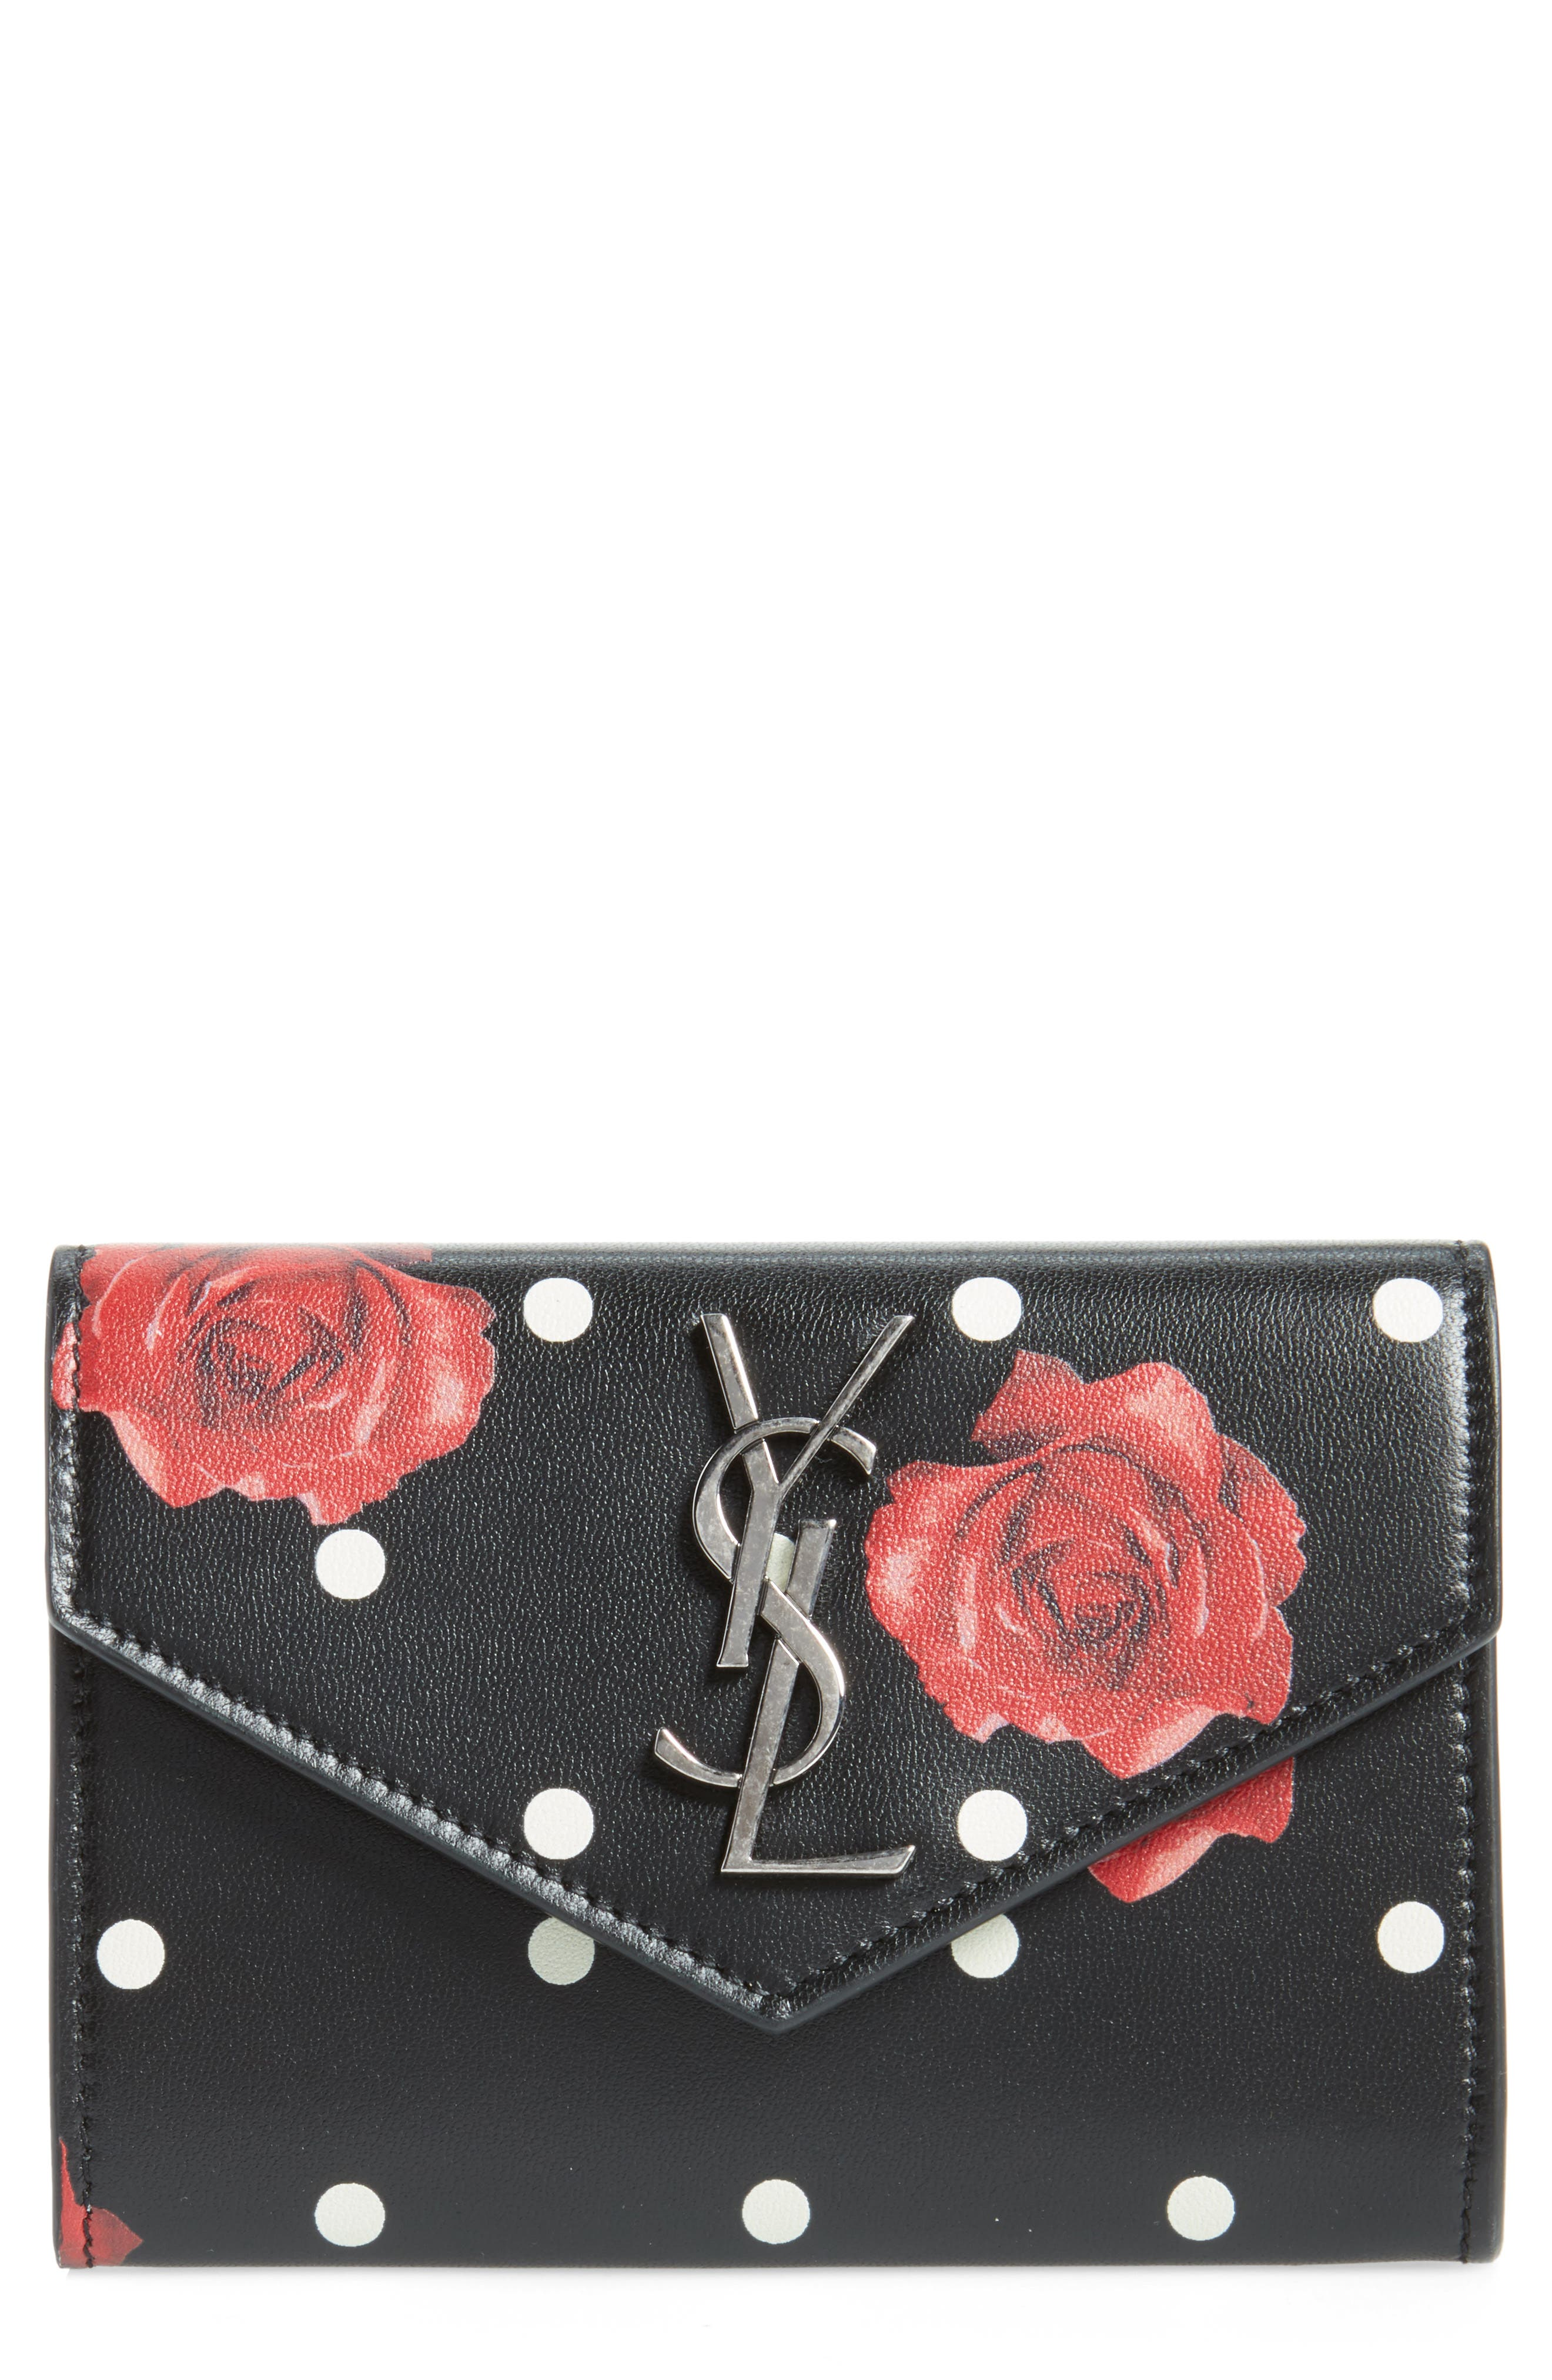 Rose & Polka Dot Small Leather French Wallet,                             Main thumbnail 1, color,                             001